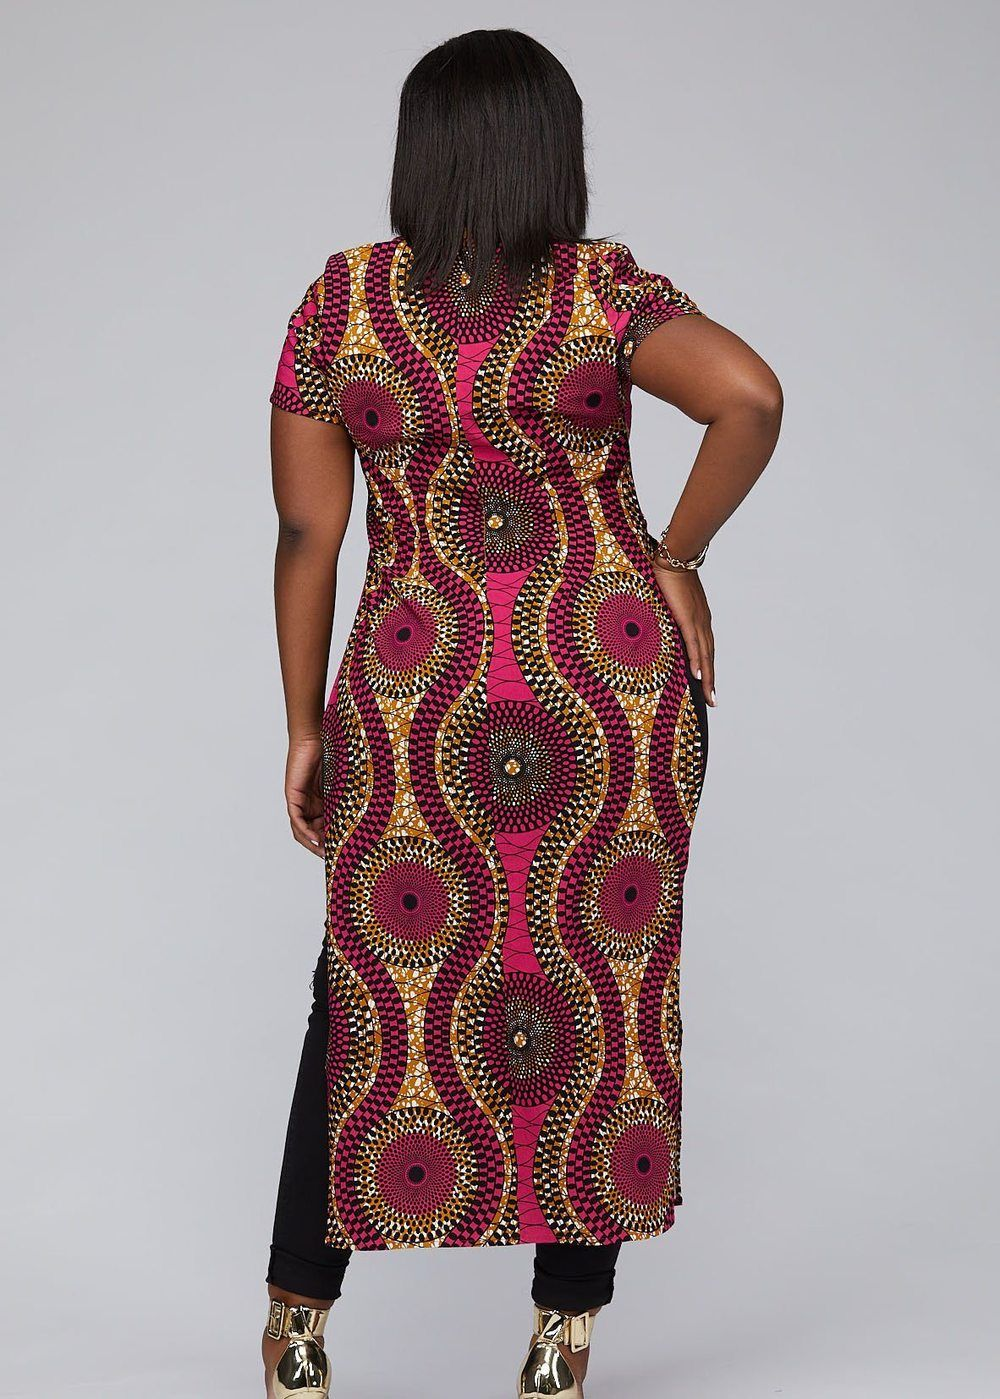 Eshe African Print Stretch Maxi Tee with Side Slits (Pink Golden Circles)